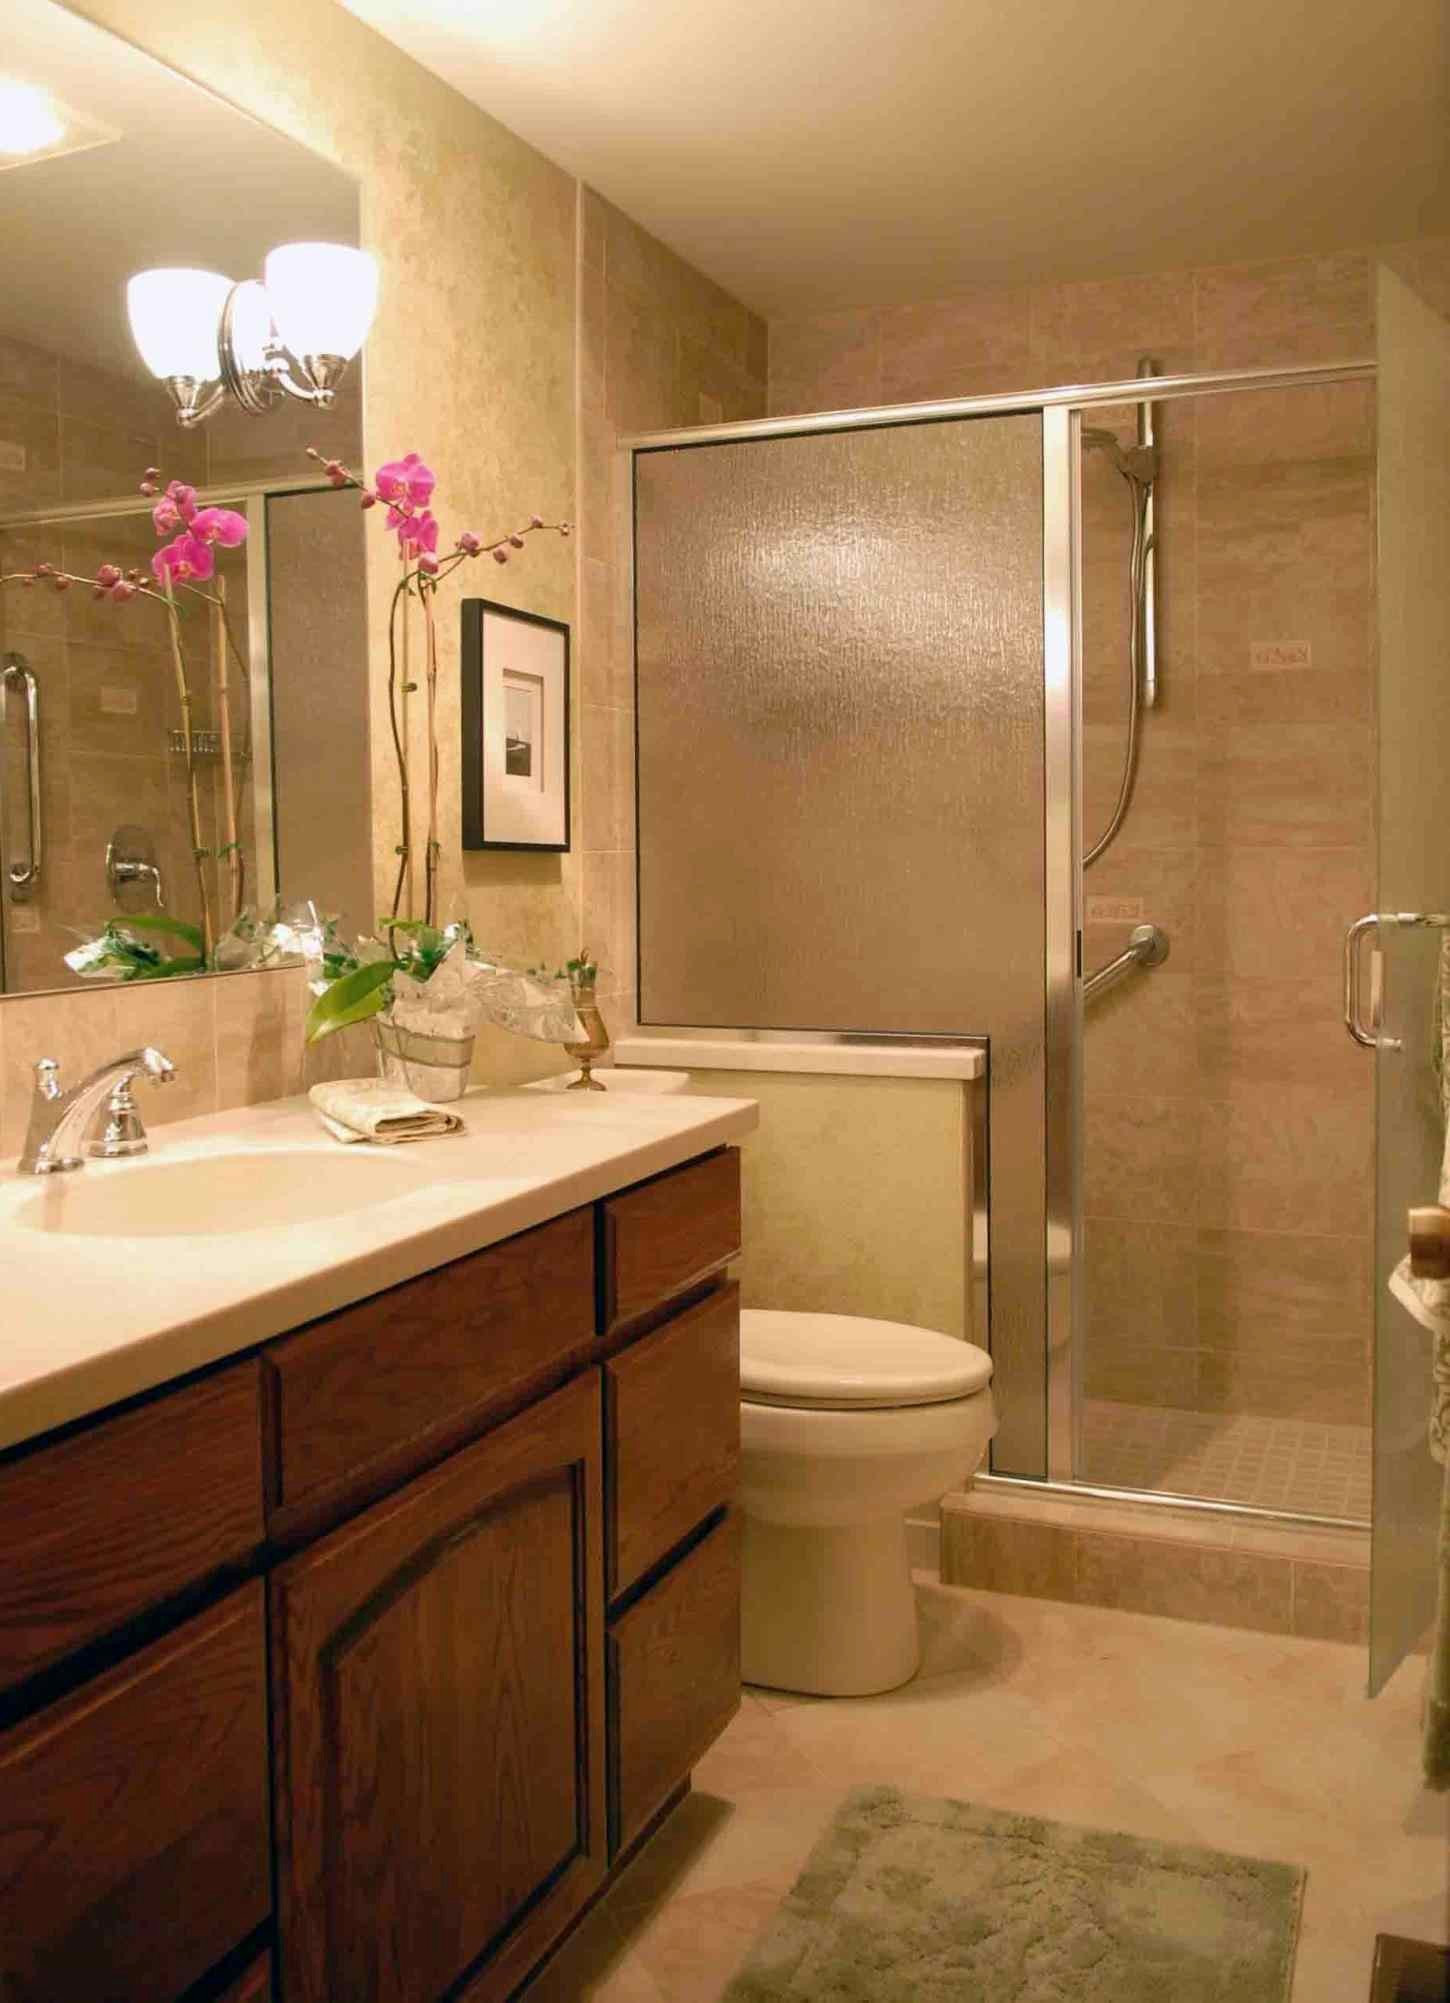 stylish 5x5 bathroom layout model bathroom design ideas gallery rh bridgeportbenedumfestival com model home bathroom ideas